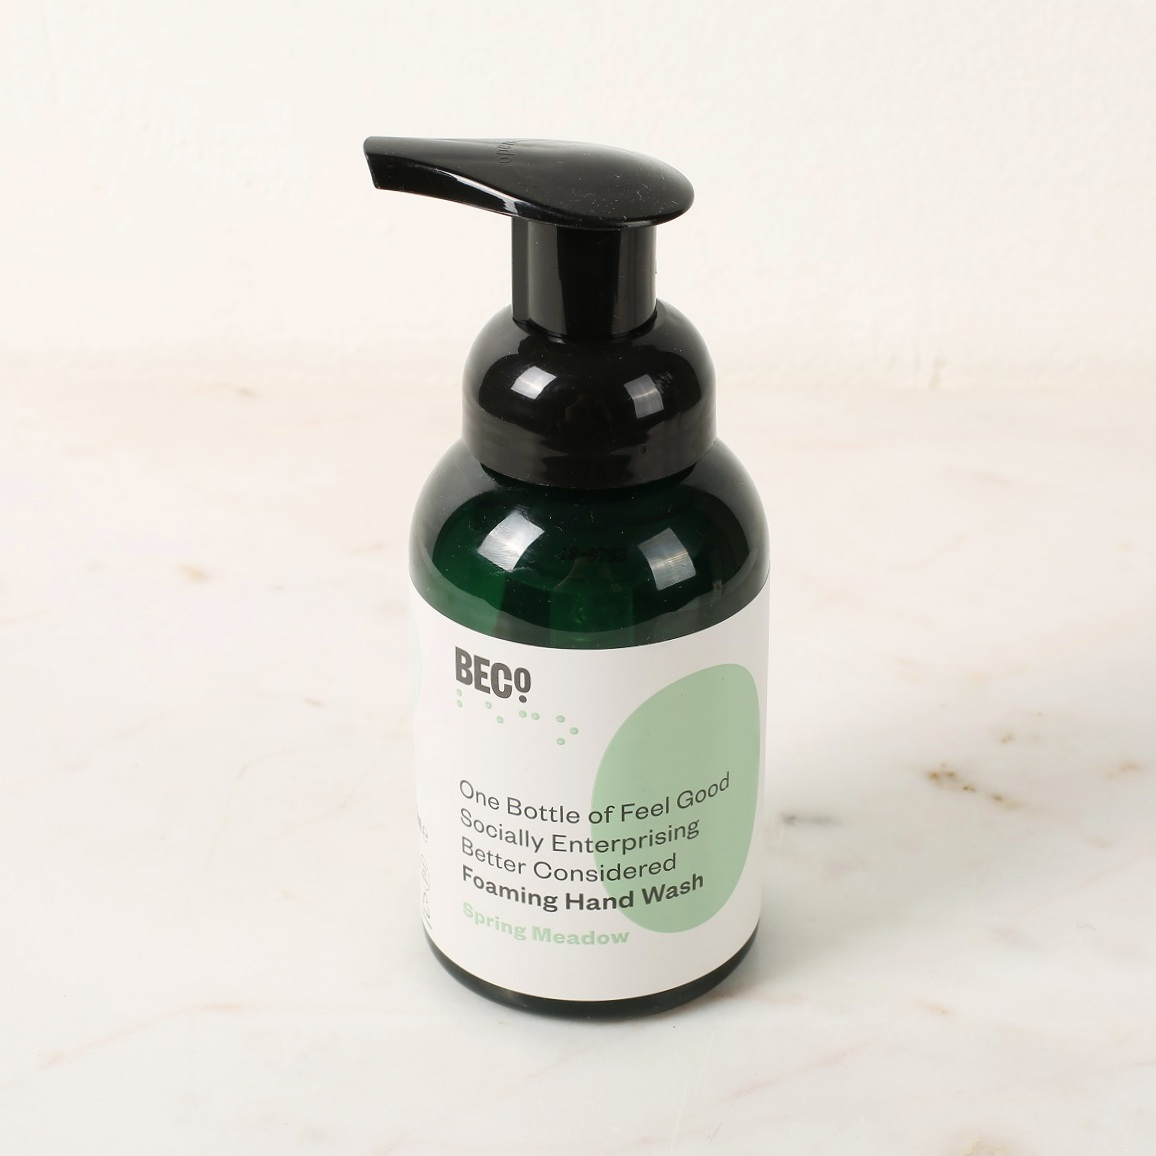 BECO Spring Meadow Foaming Hand Wash